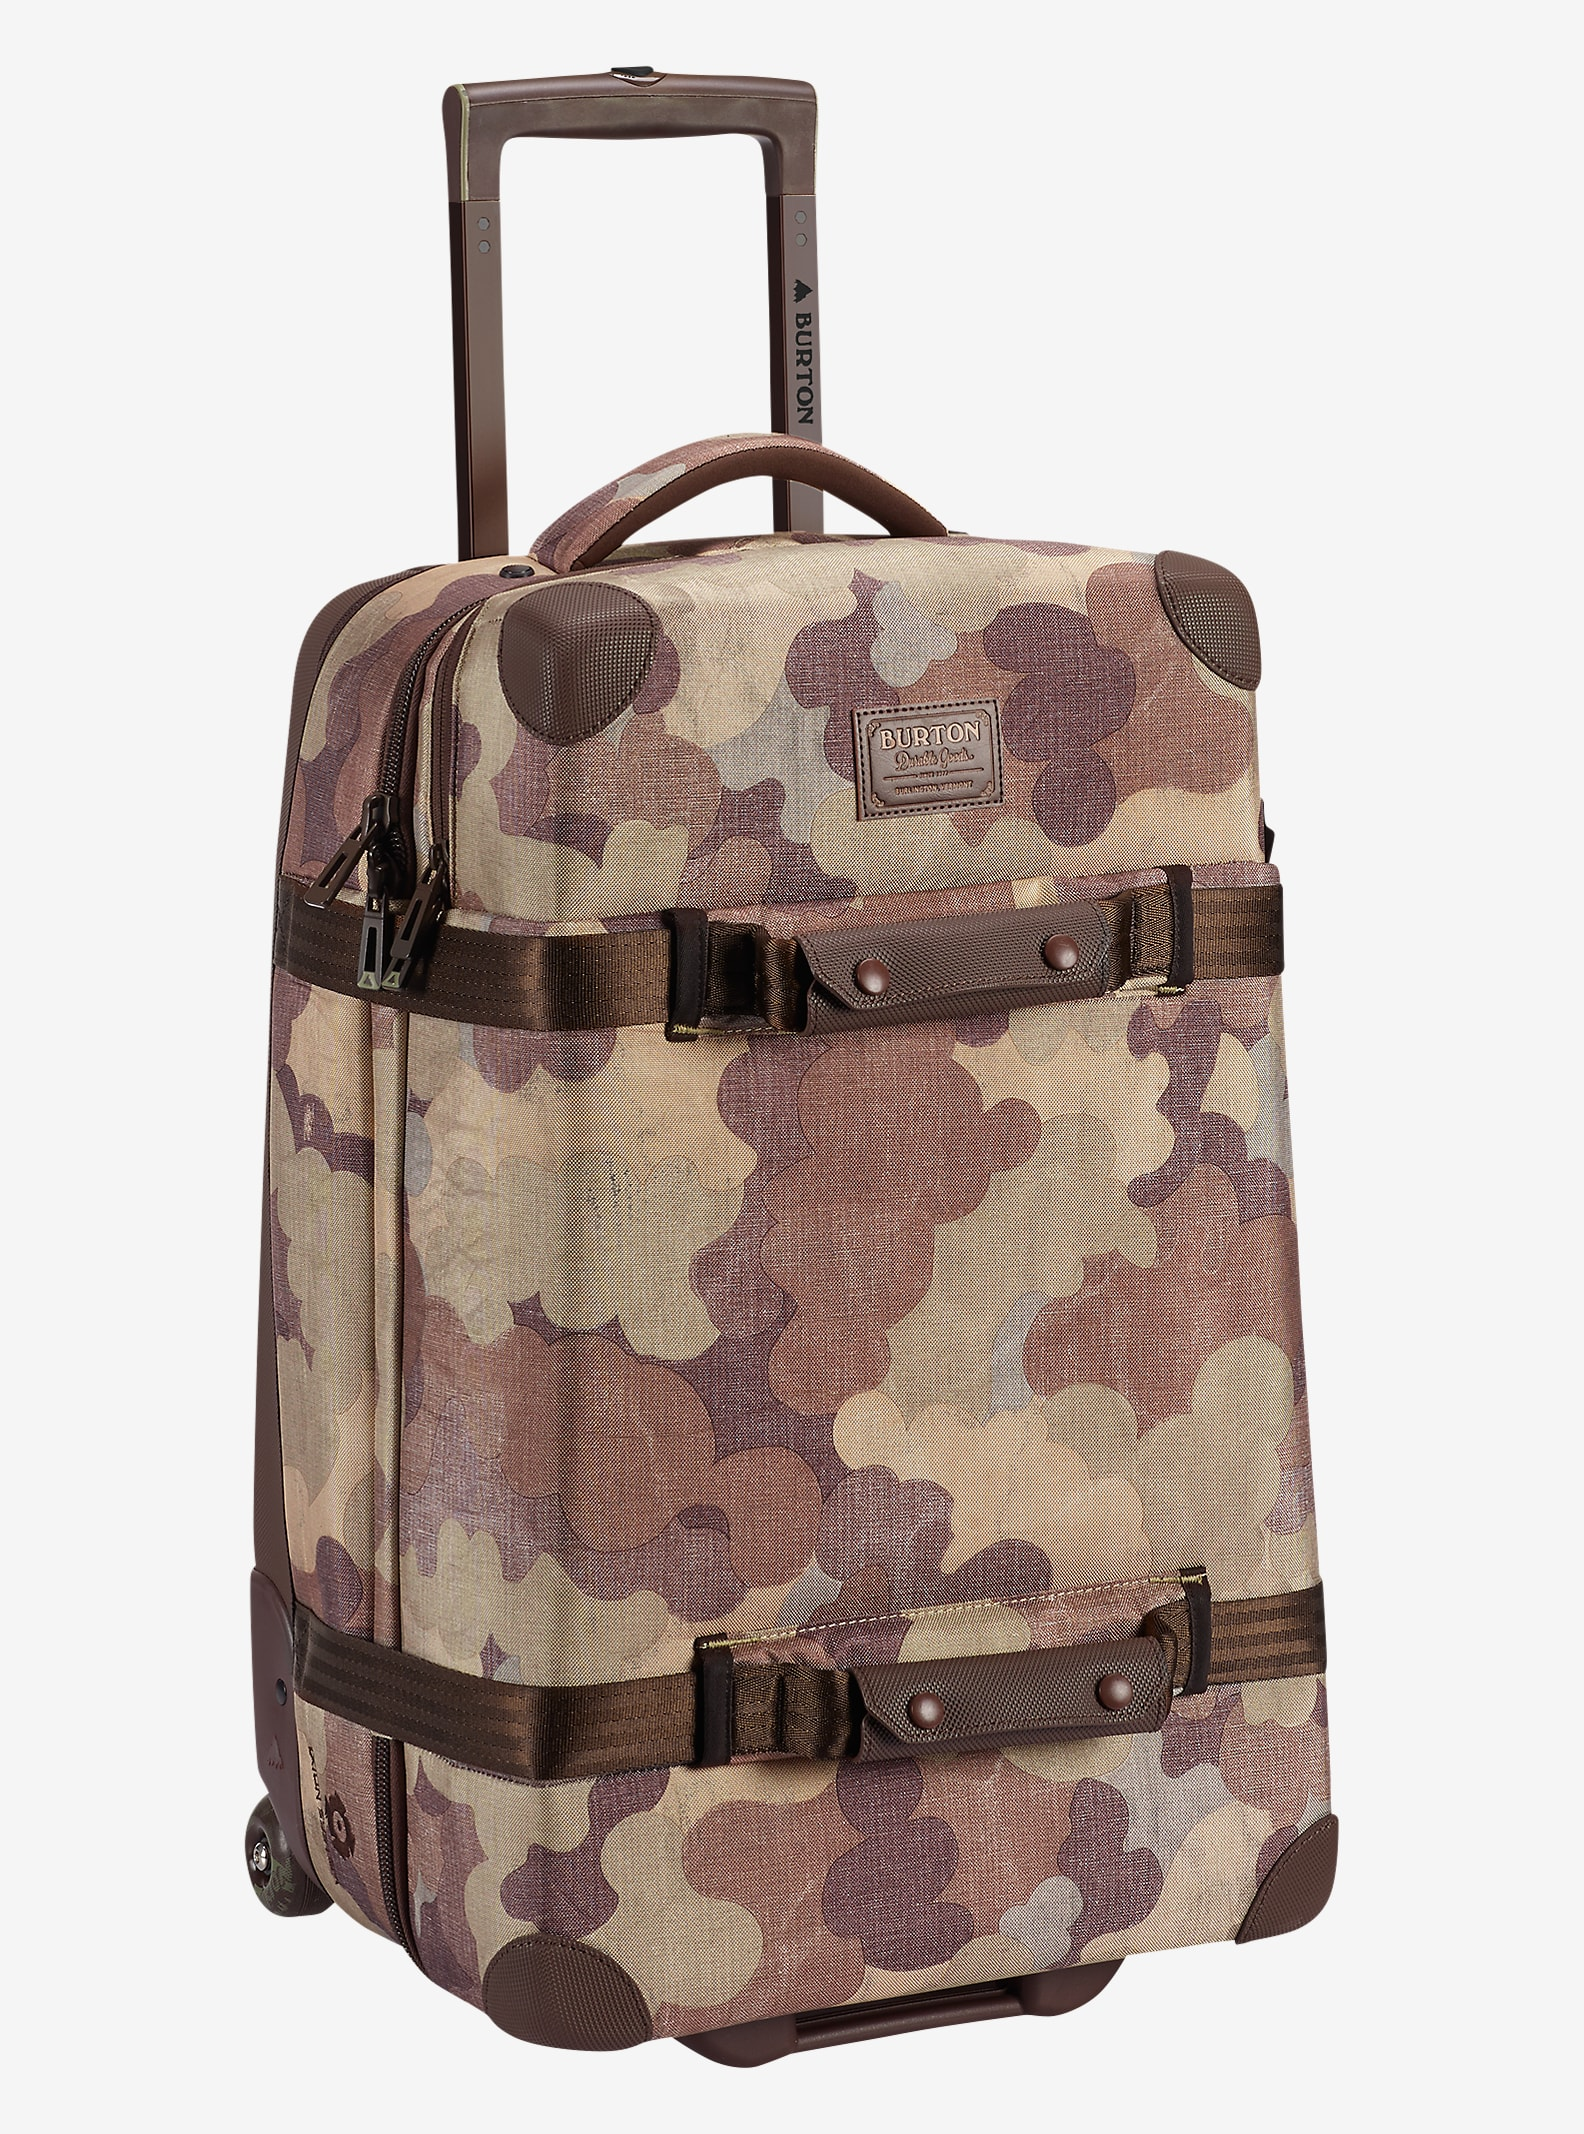 Burton Wheelie Cargo Travel Bag shown in Storm Camo Print